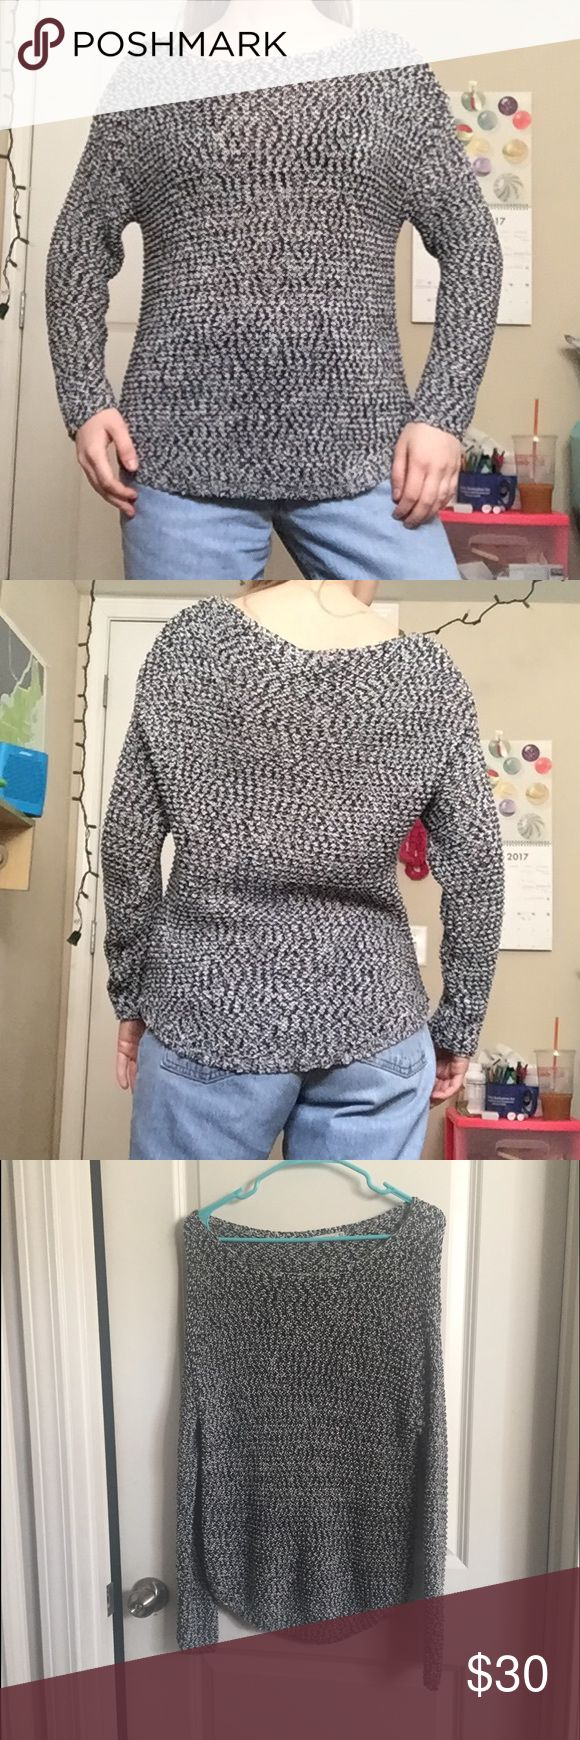 NWOT ZARA LOOSE KNIT, LIGHTWEIGHT MARLED SWEATER Bought this in Italy! NWOT. The knit is very loose and requires a shirt/bra underneath. Very lightweight, beachy, and breathable! Wide neck Zara Sweaters Crew & Scoop Necks